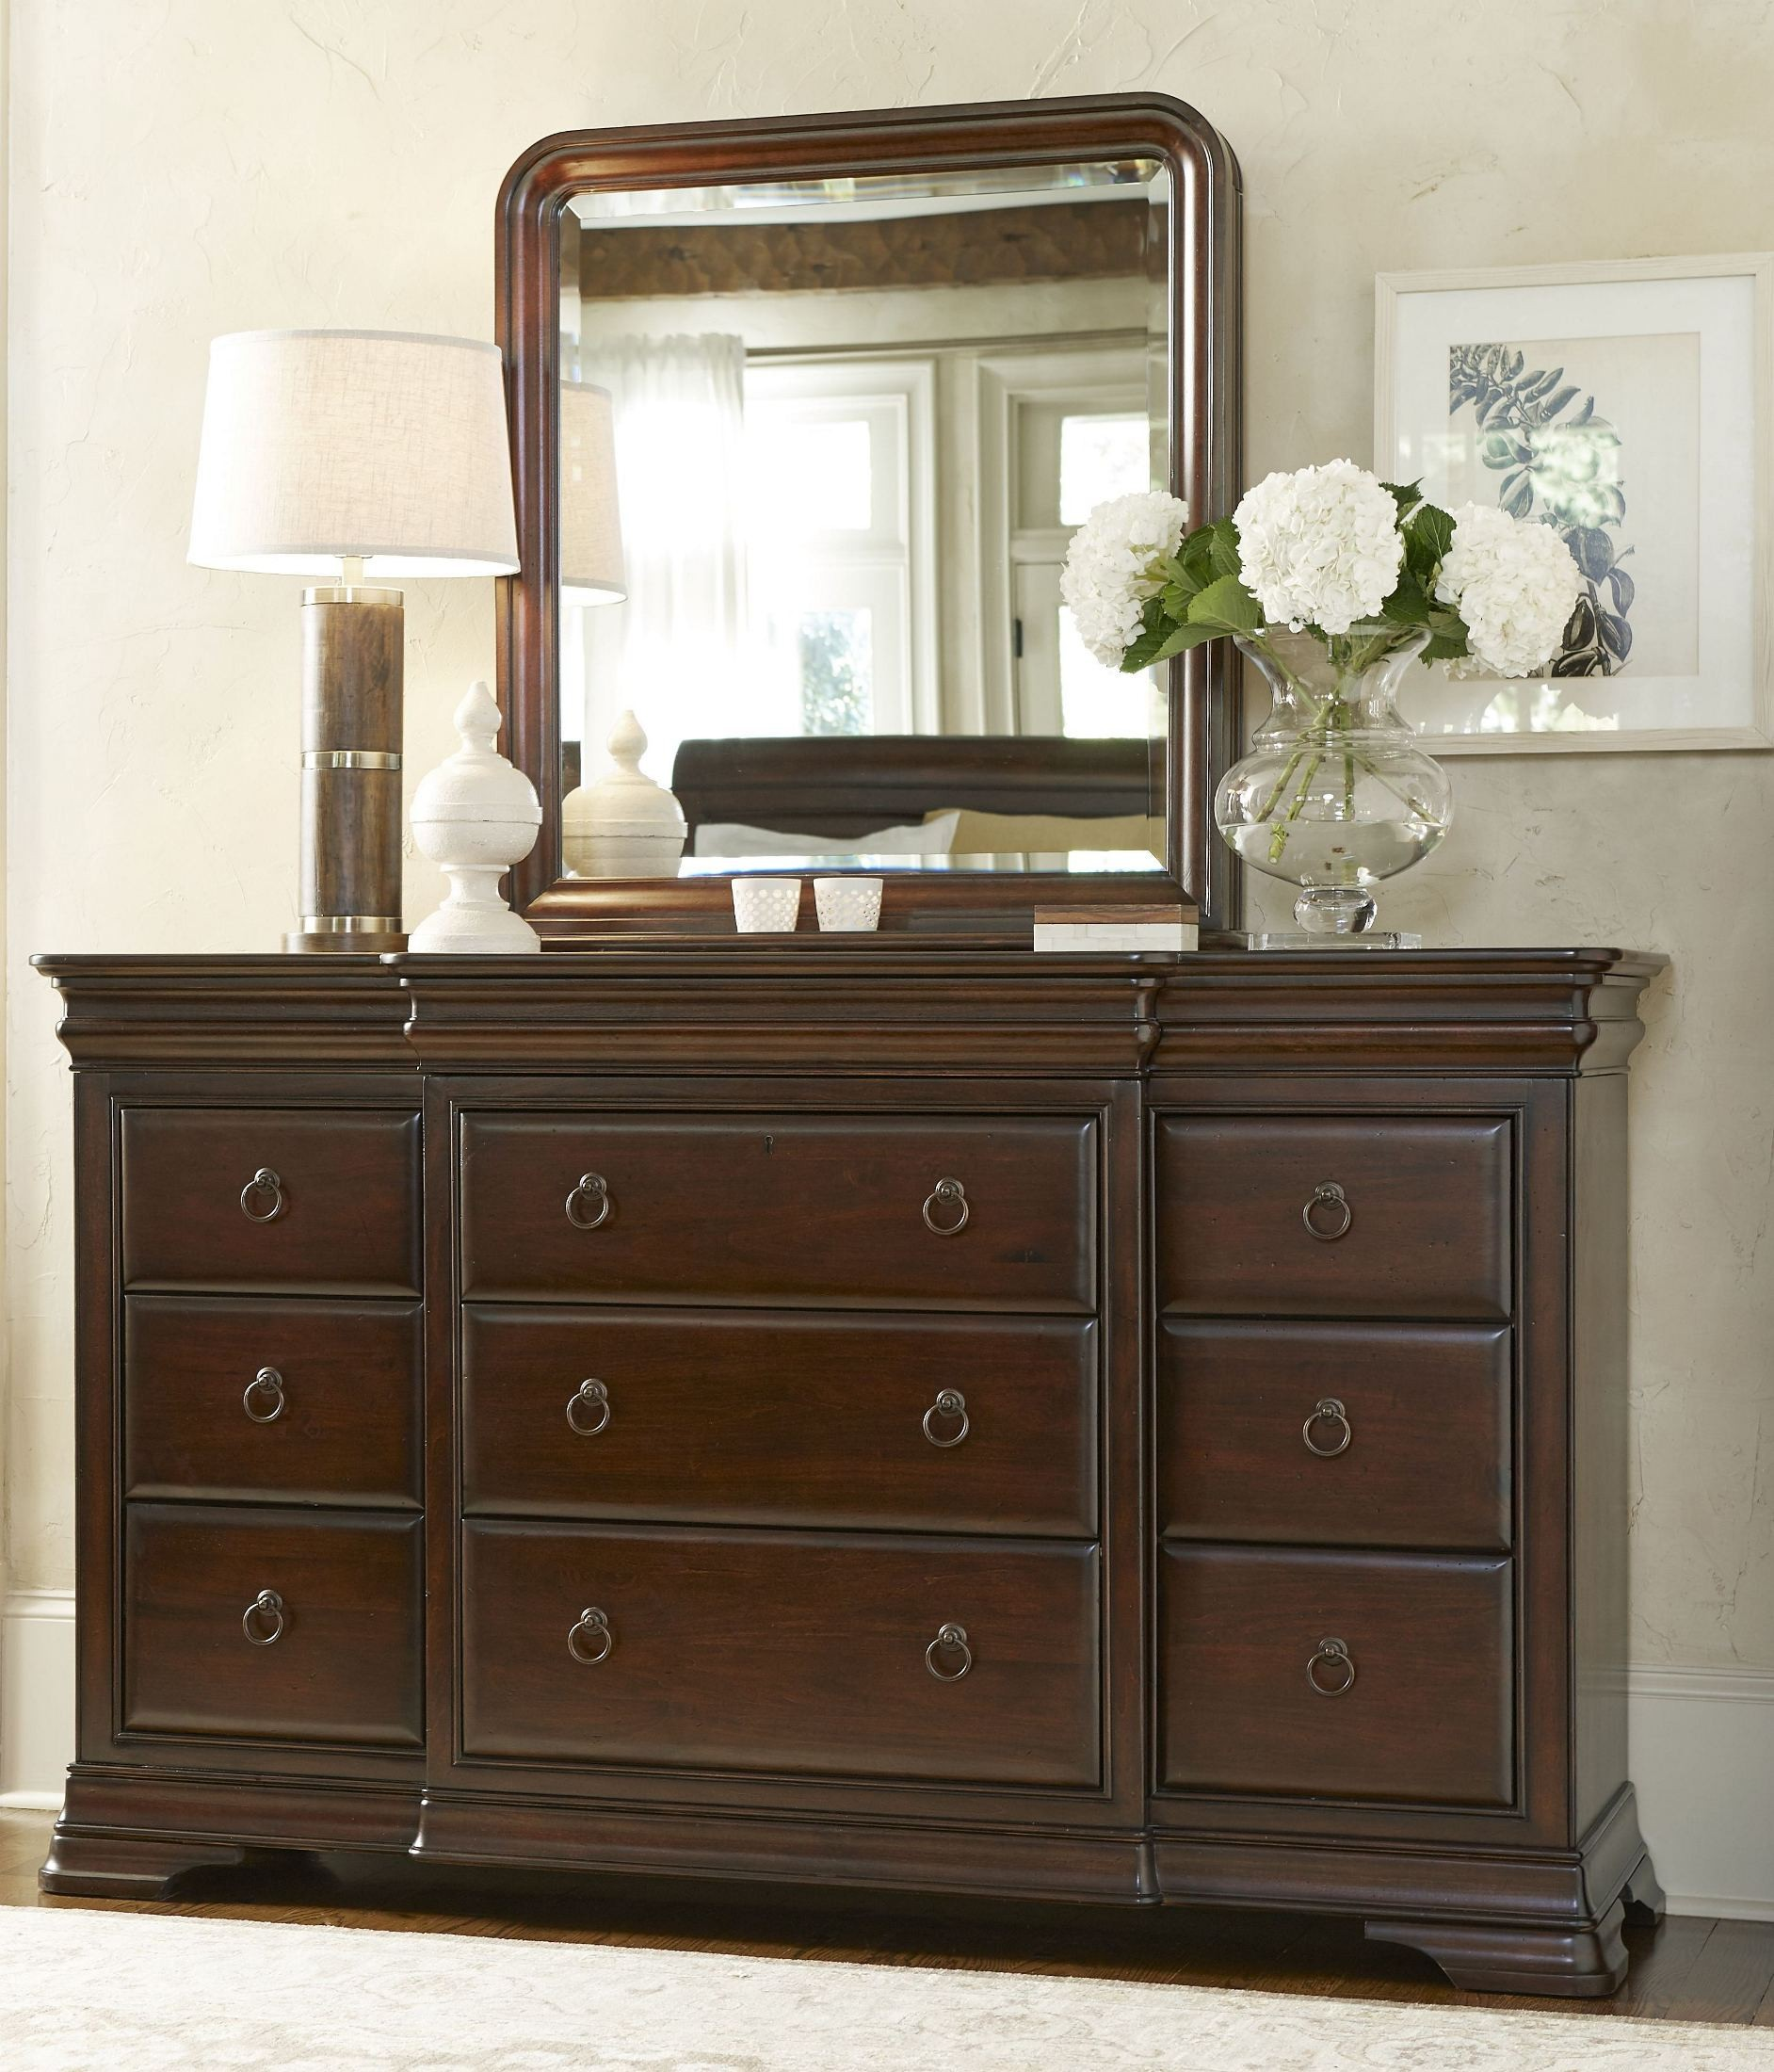 Reprise classical cherry sleigh bedroom set 58175b universal for Cherry bedroom furniture